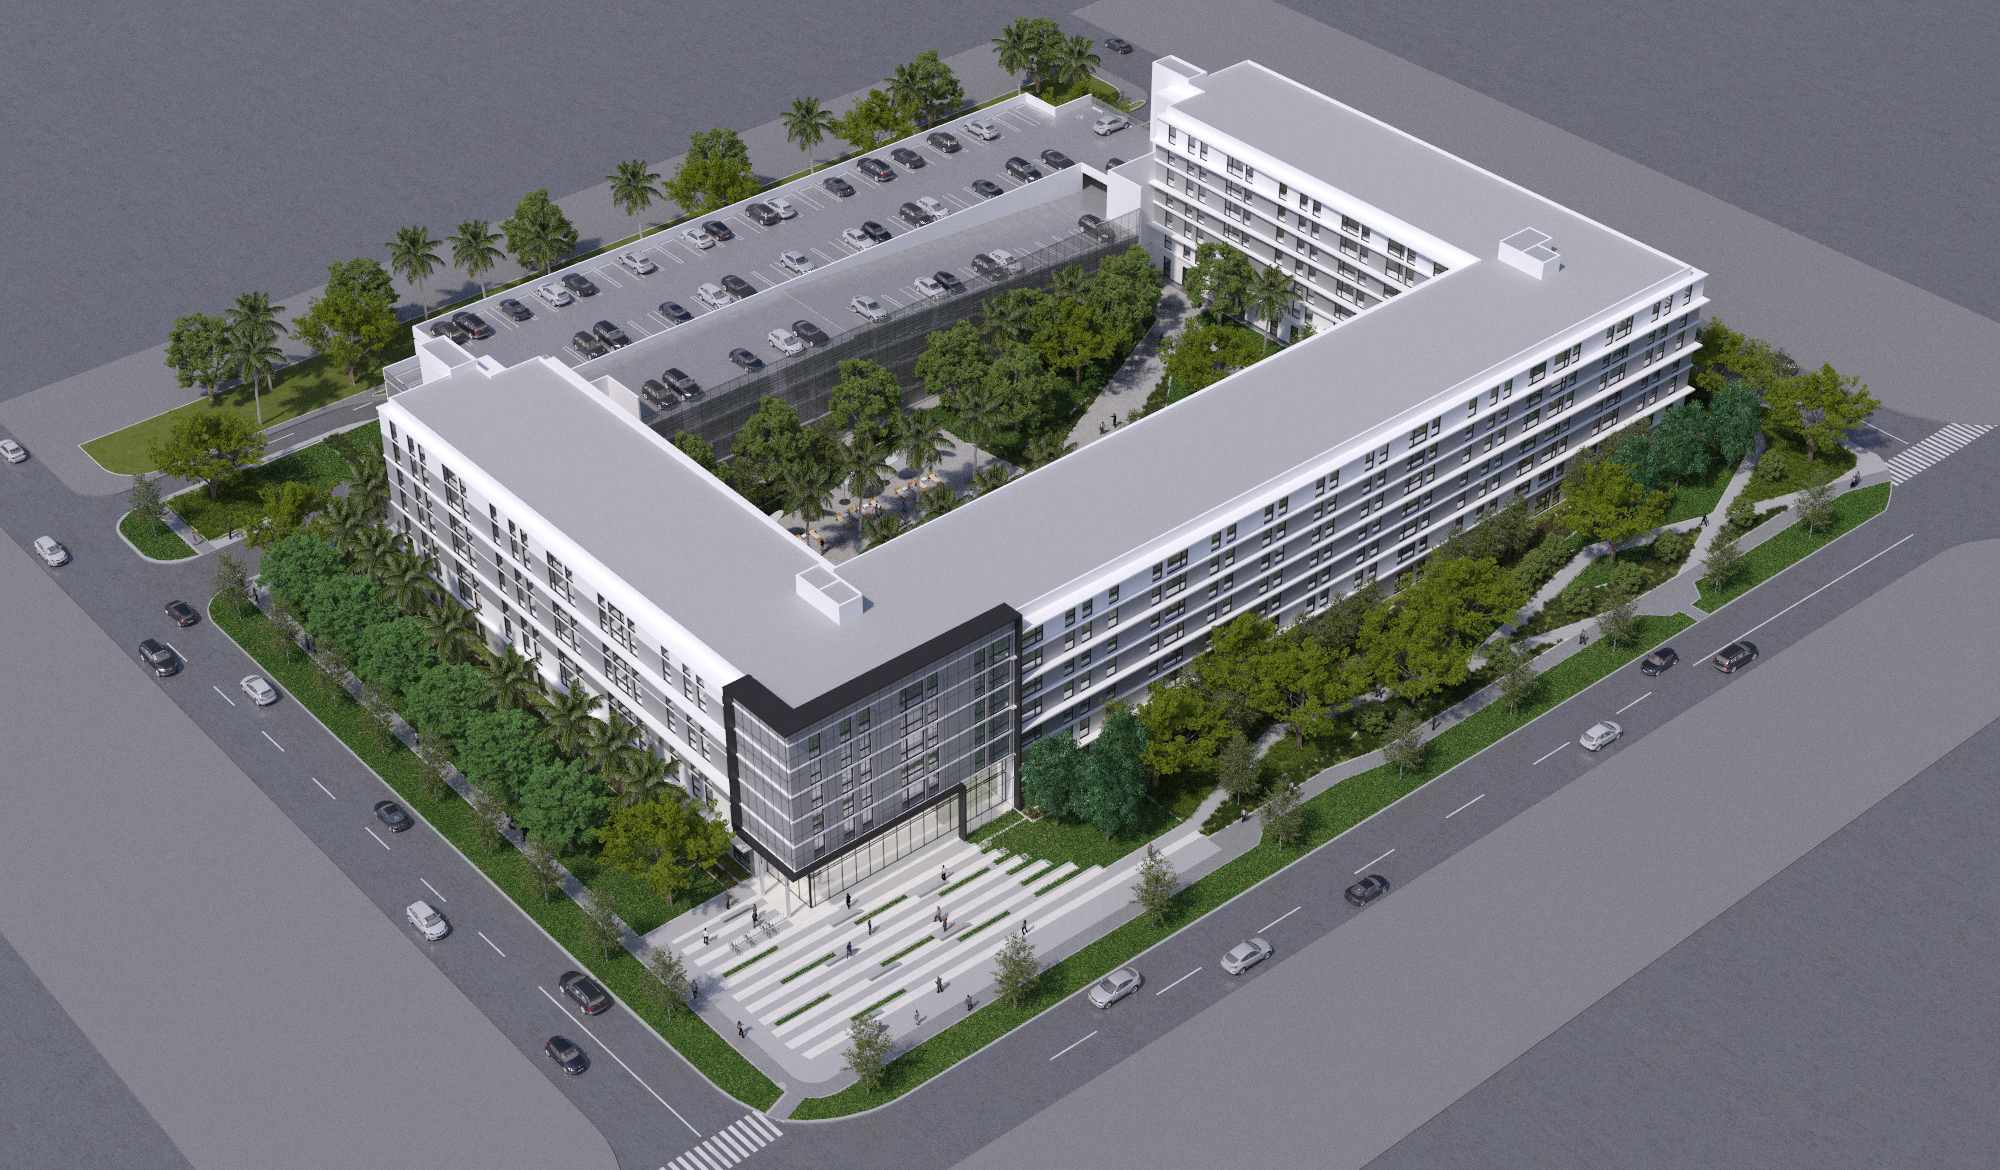 Aerial Rendering - Pedestrian greenways are populated with an extensive tree canopy to create shade for the building and passersby.